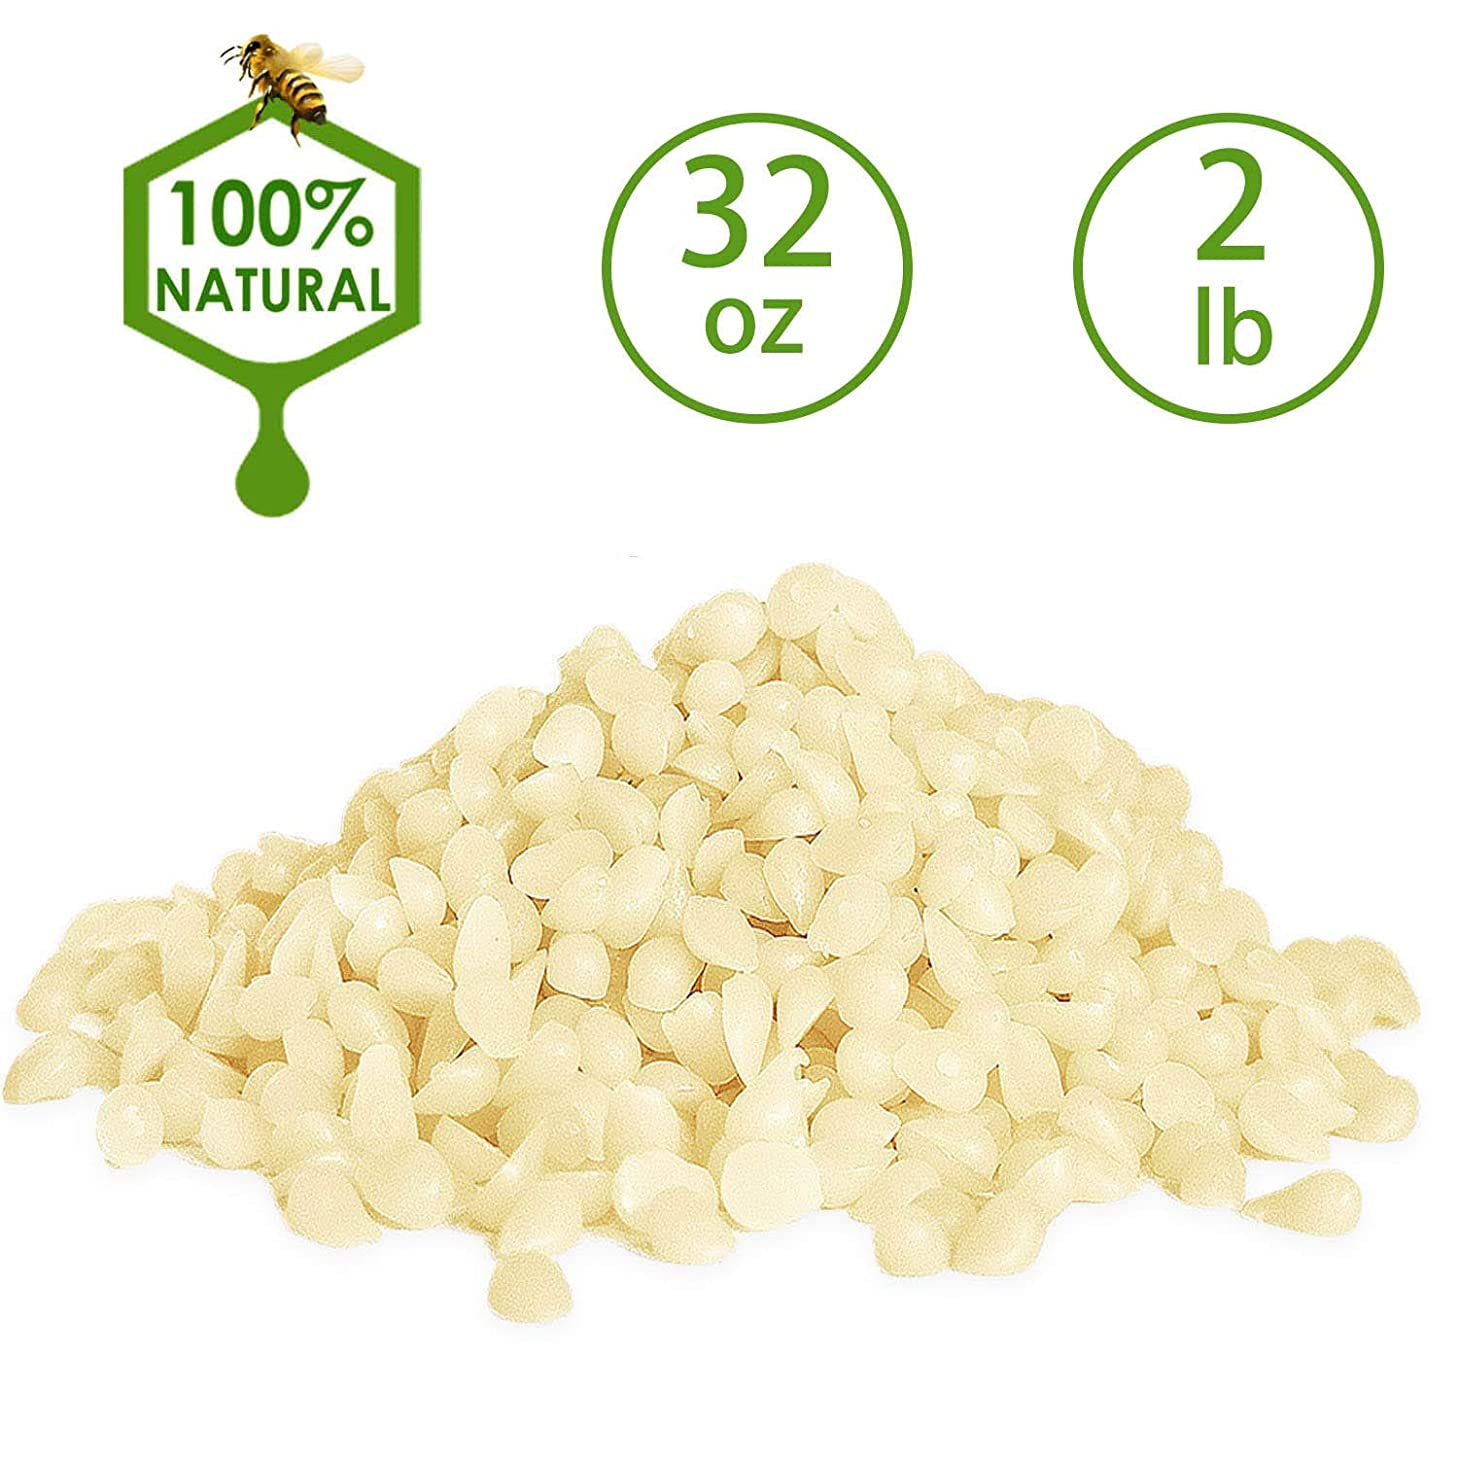 YIIA White Beeswax Pellets 2 lb (32 oz) Pure, Natural, Cosmetic Grade Beeswax Pastilles